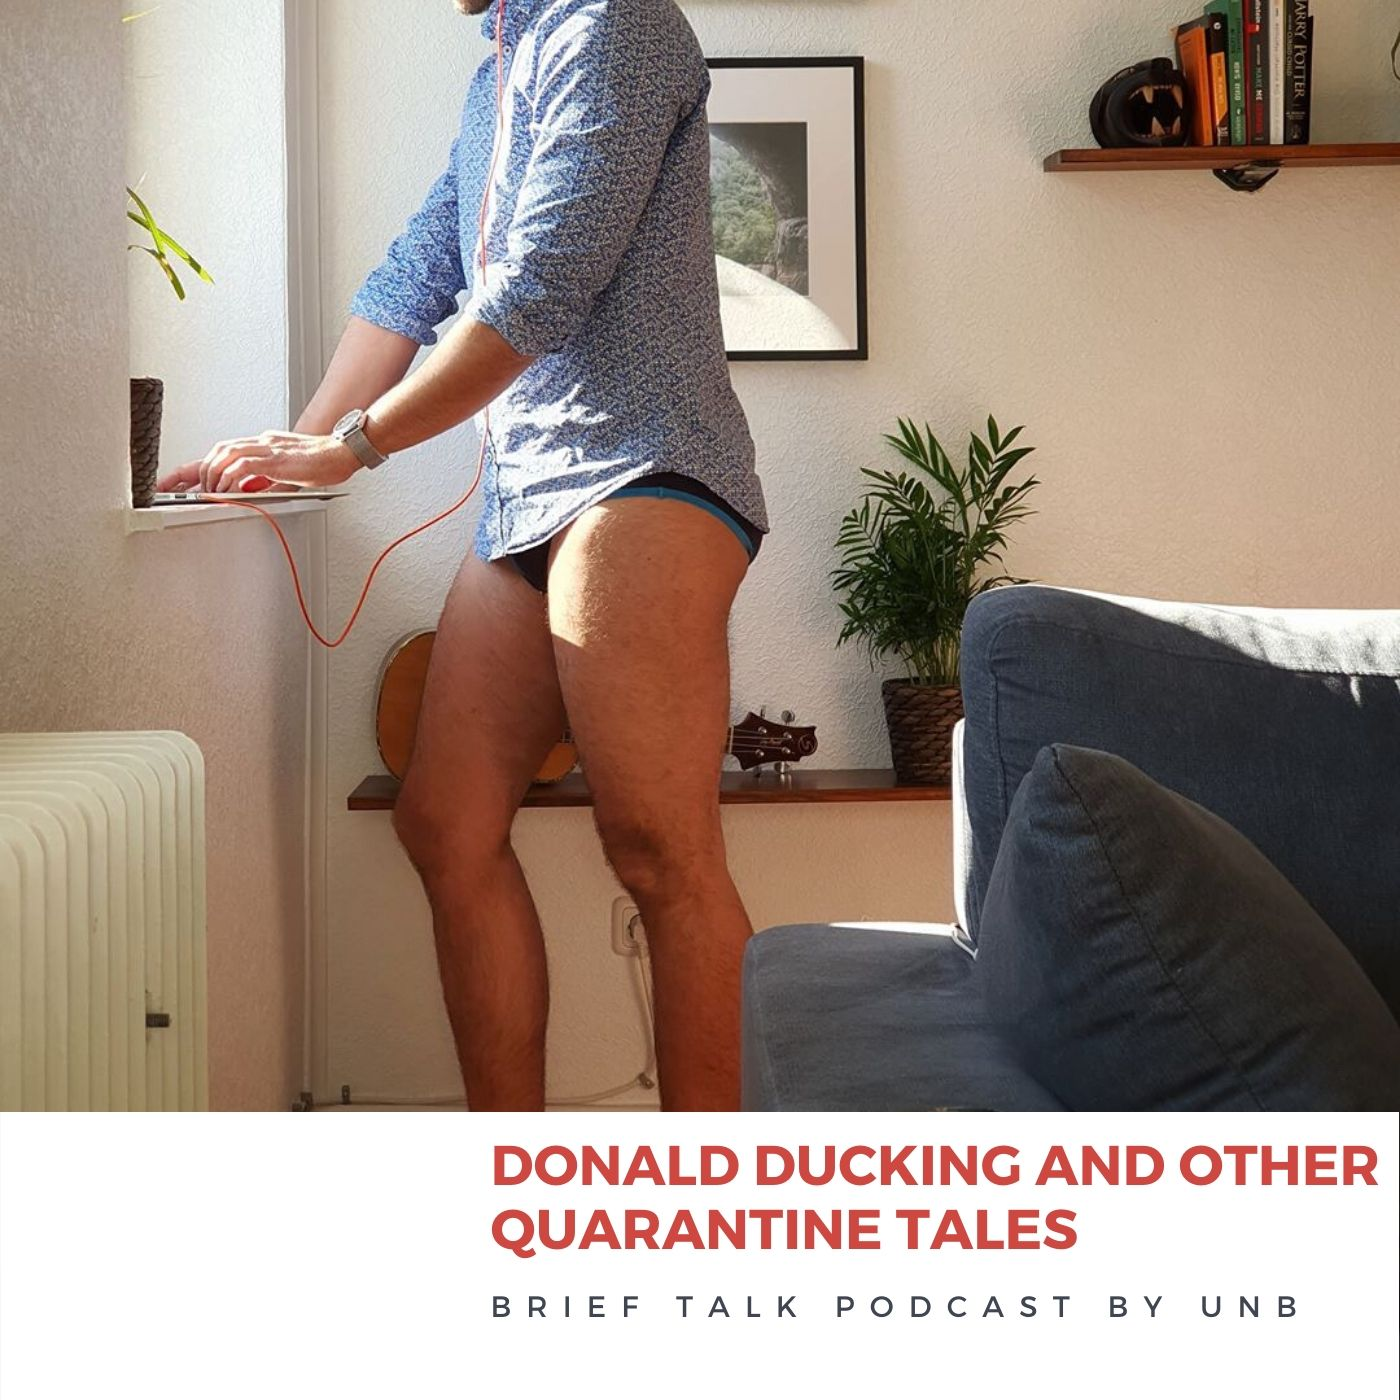 Brief Talk Podcast - Donald Ducking and other Quarantine Tales